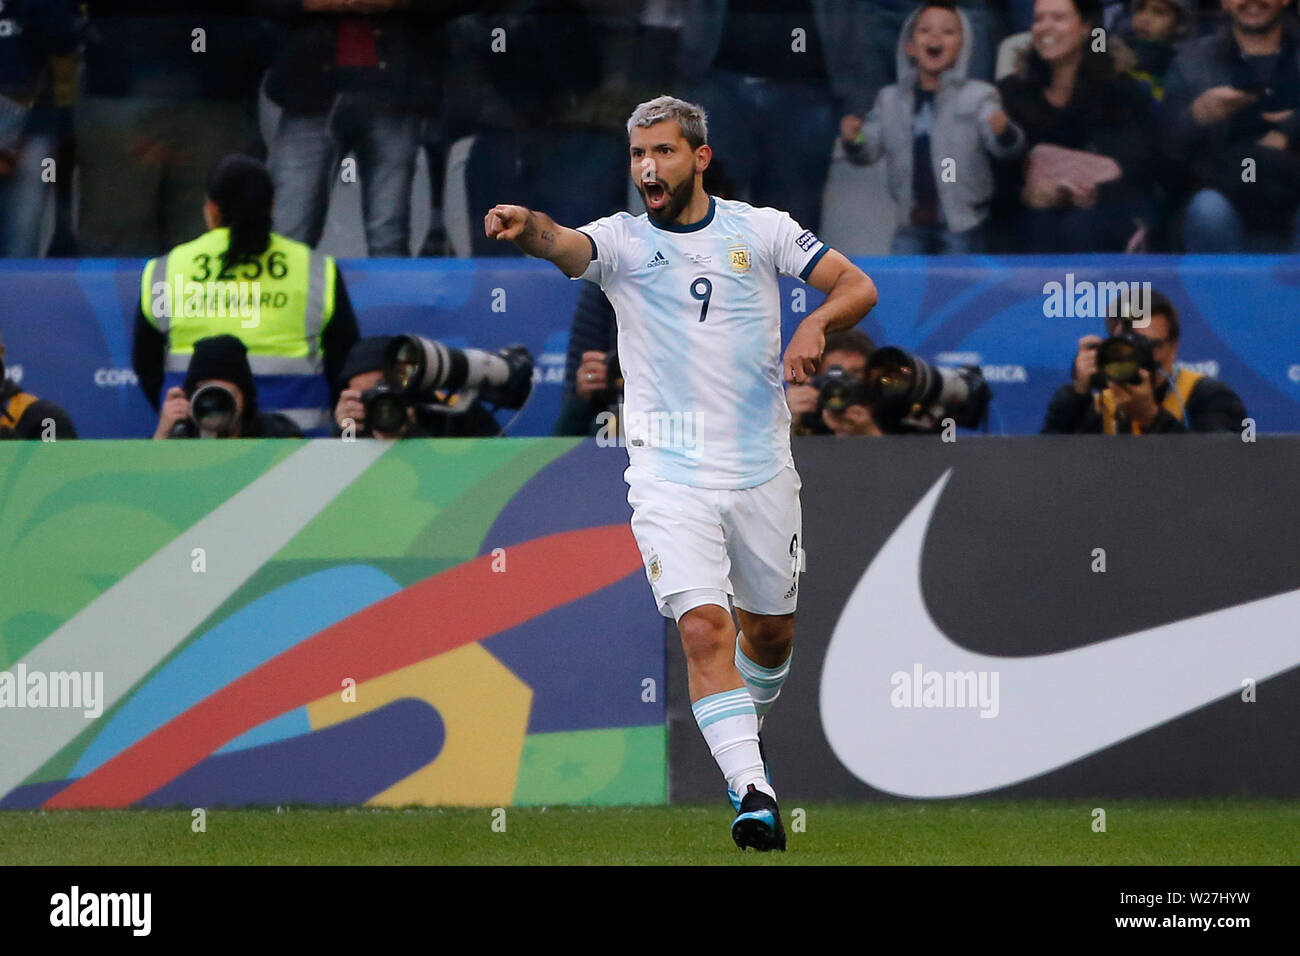 6th July 2019, Arena Corinthians Stadium, Sao Paulo, Brazil; Copa America international football, 3rd-4th playoff final, Argentina versus Chile; Sergio Agüero of Argentina celebrates his goal for 1-0 in the 12th minute Stock Photo